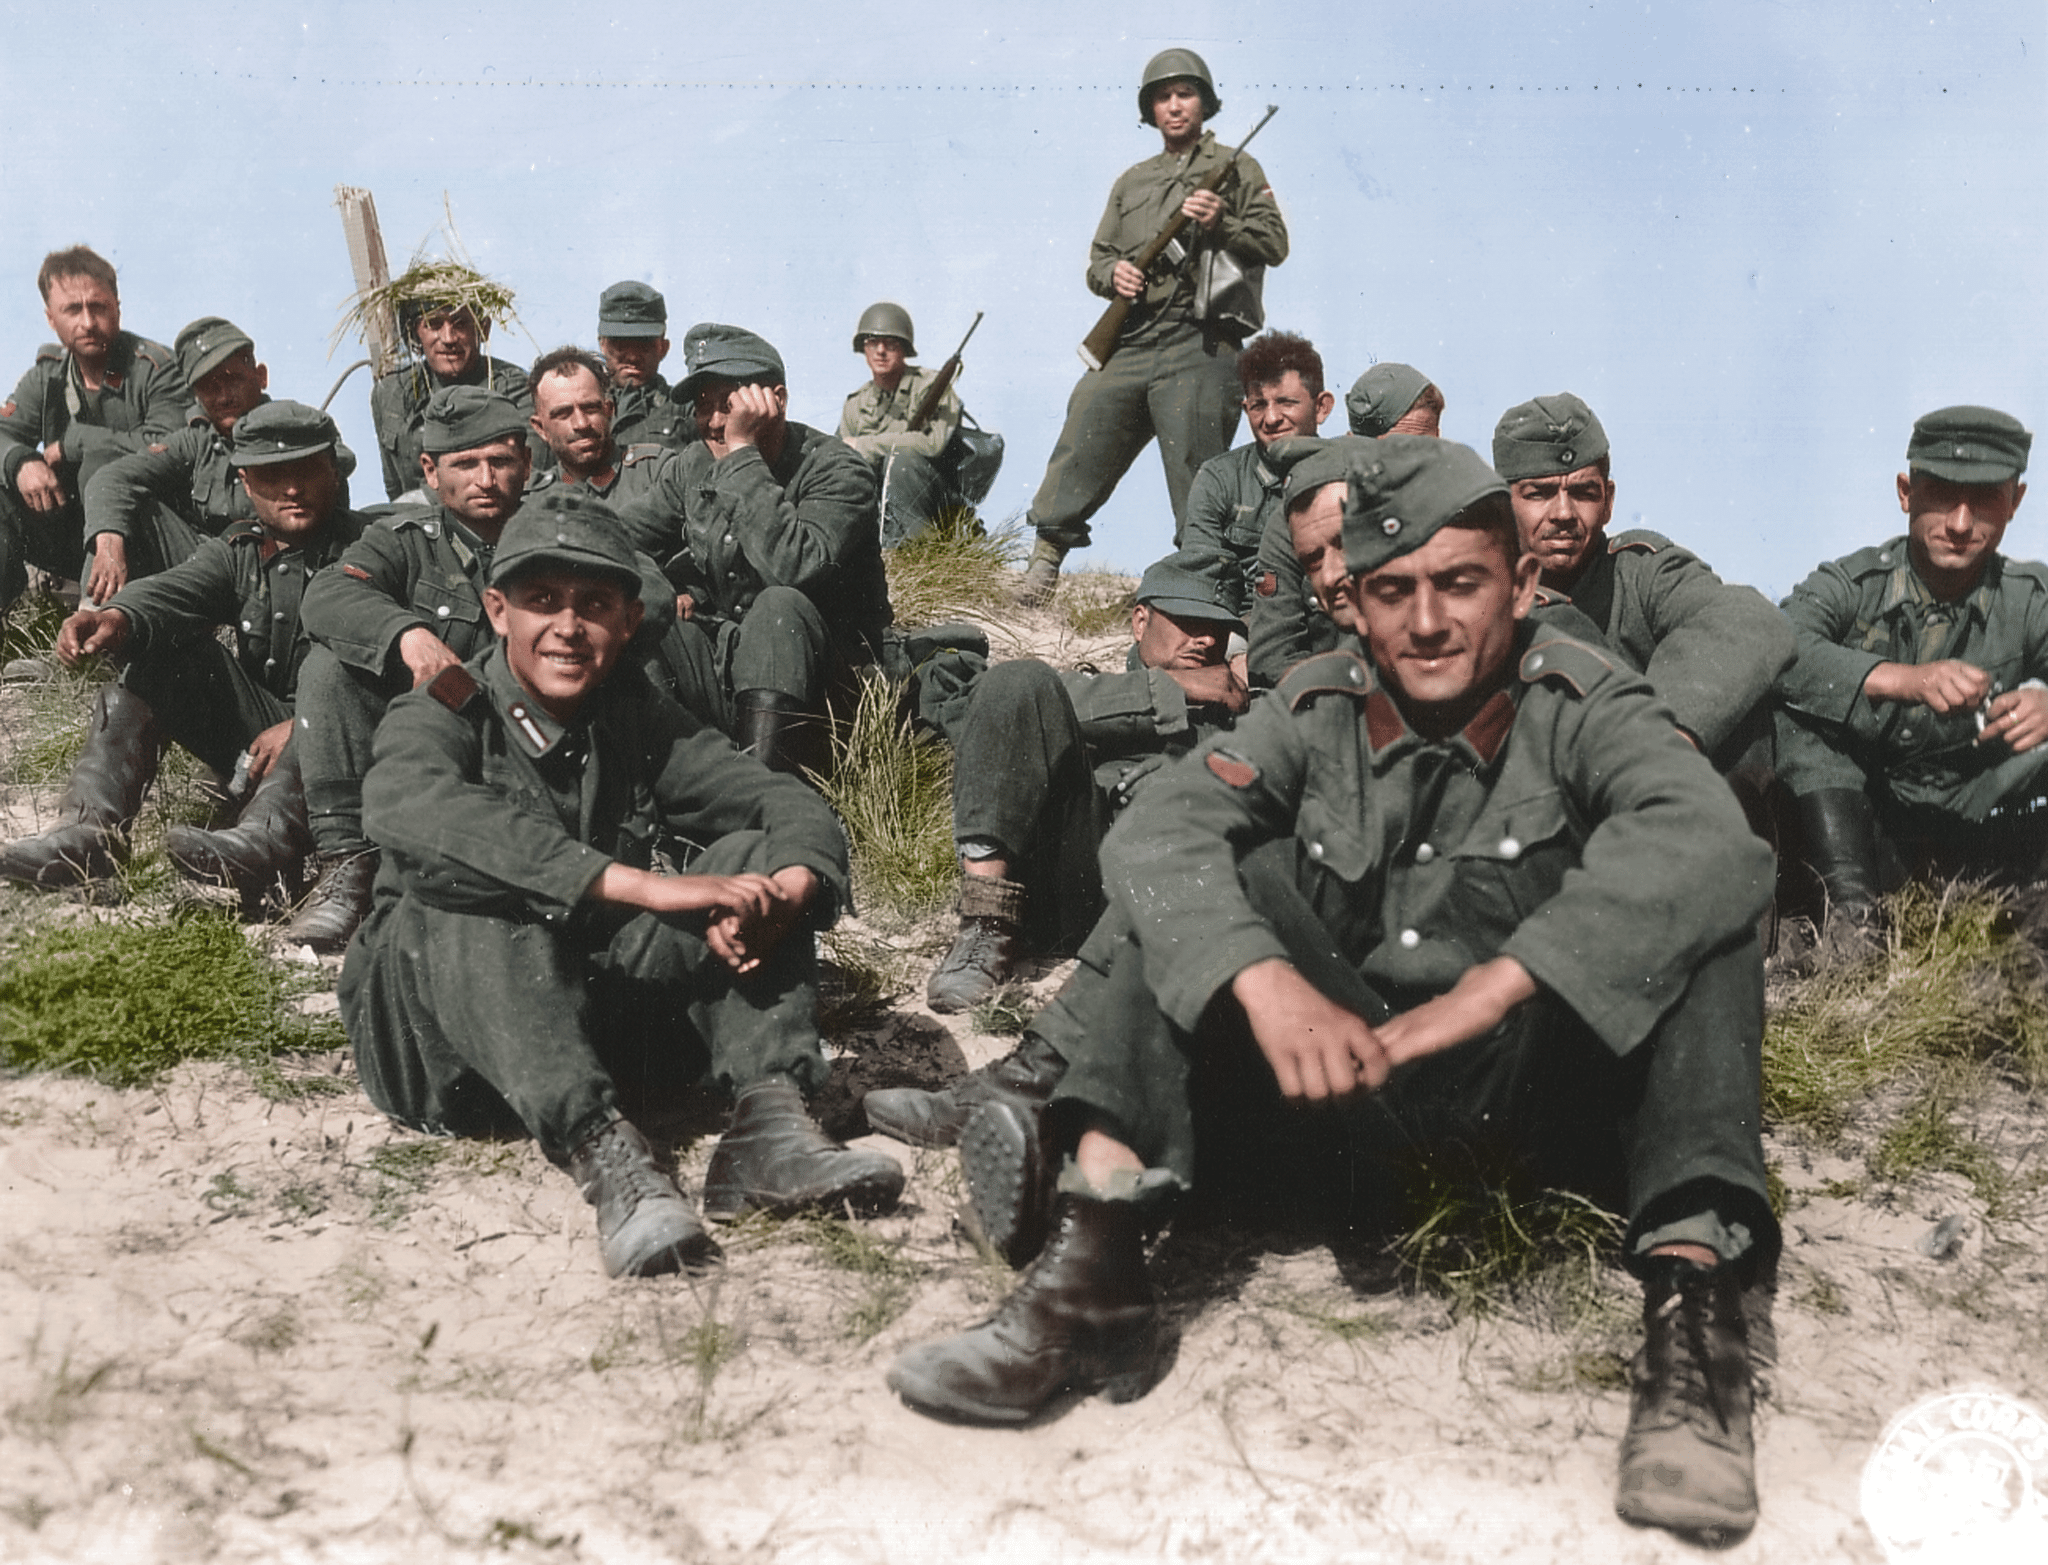 POW after D-Day